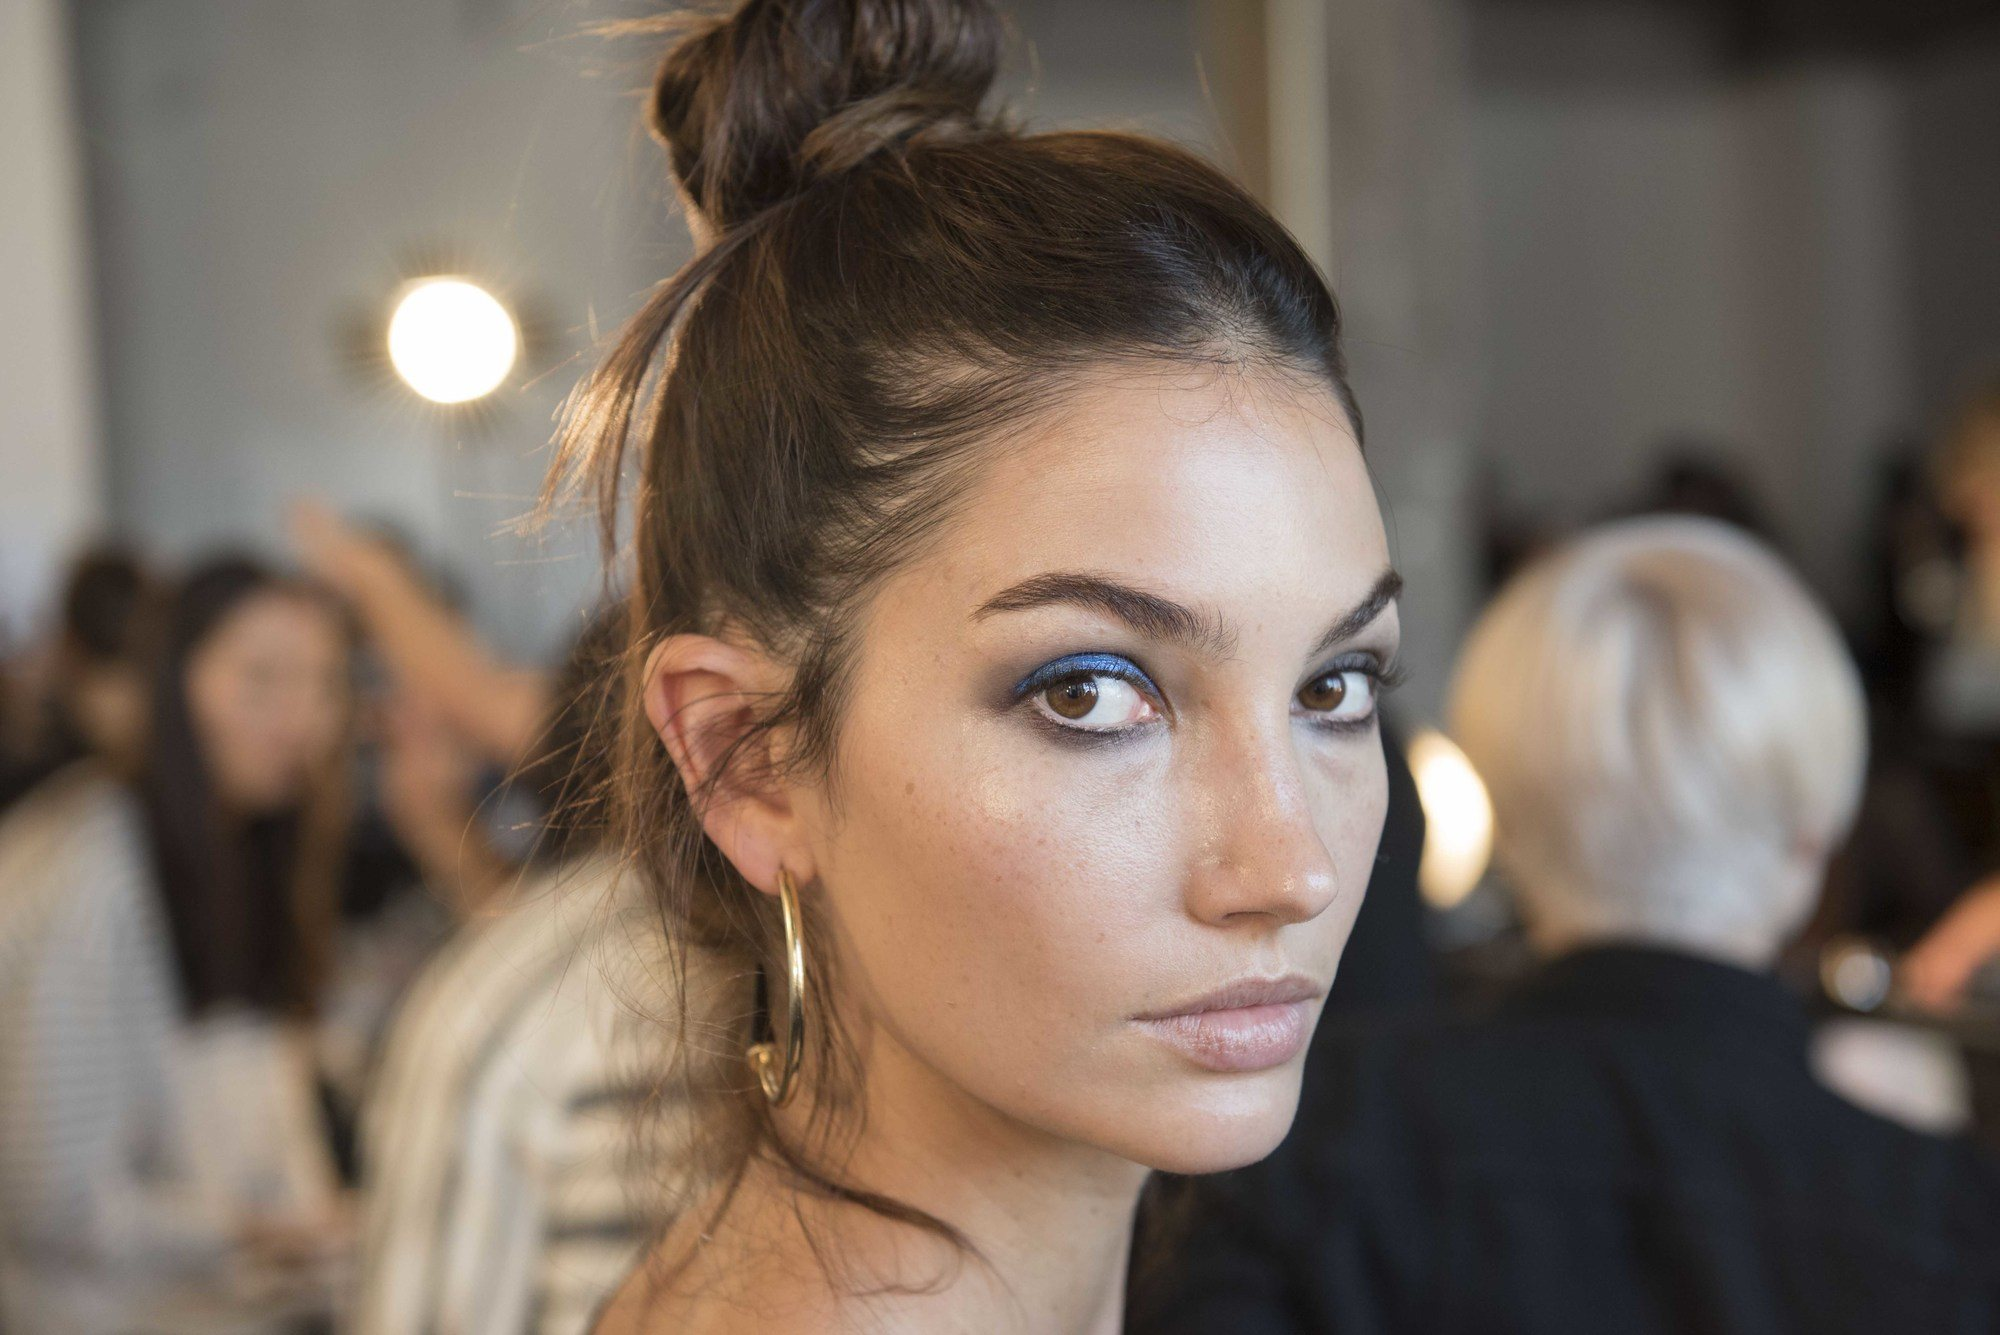 Lily Aldridge backstage at DVF with top knot hair